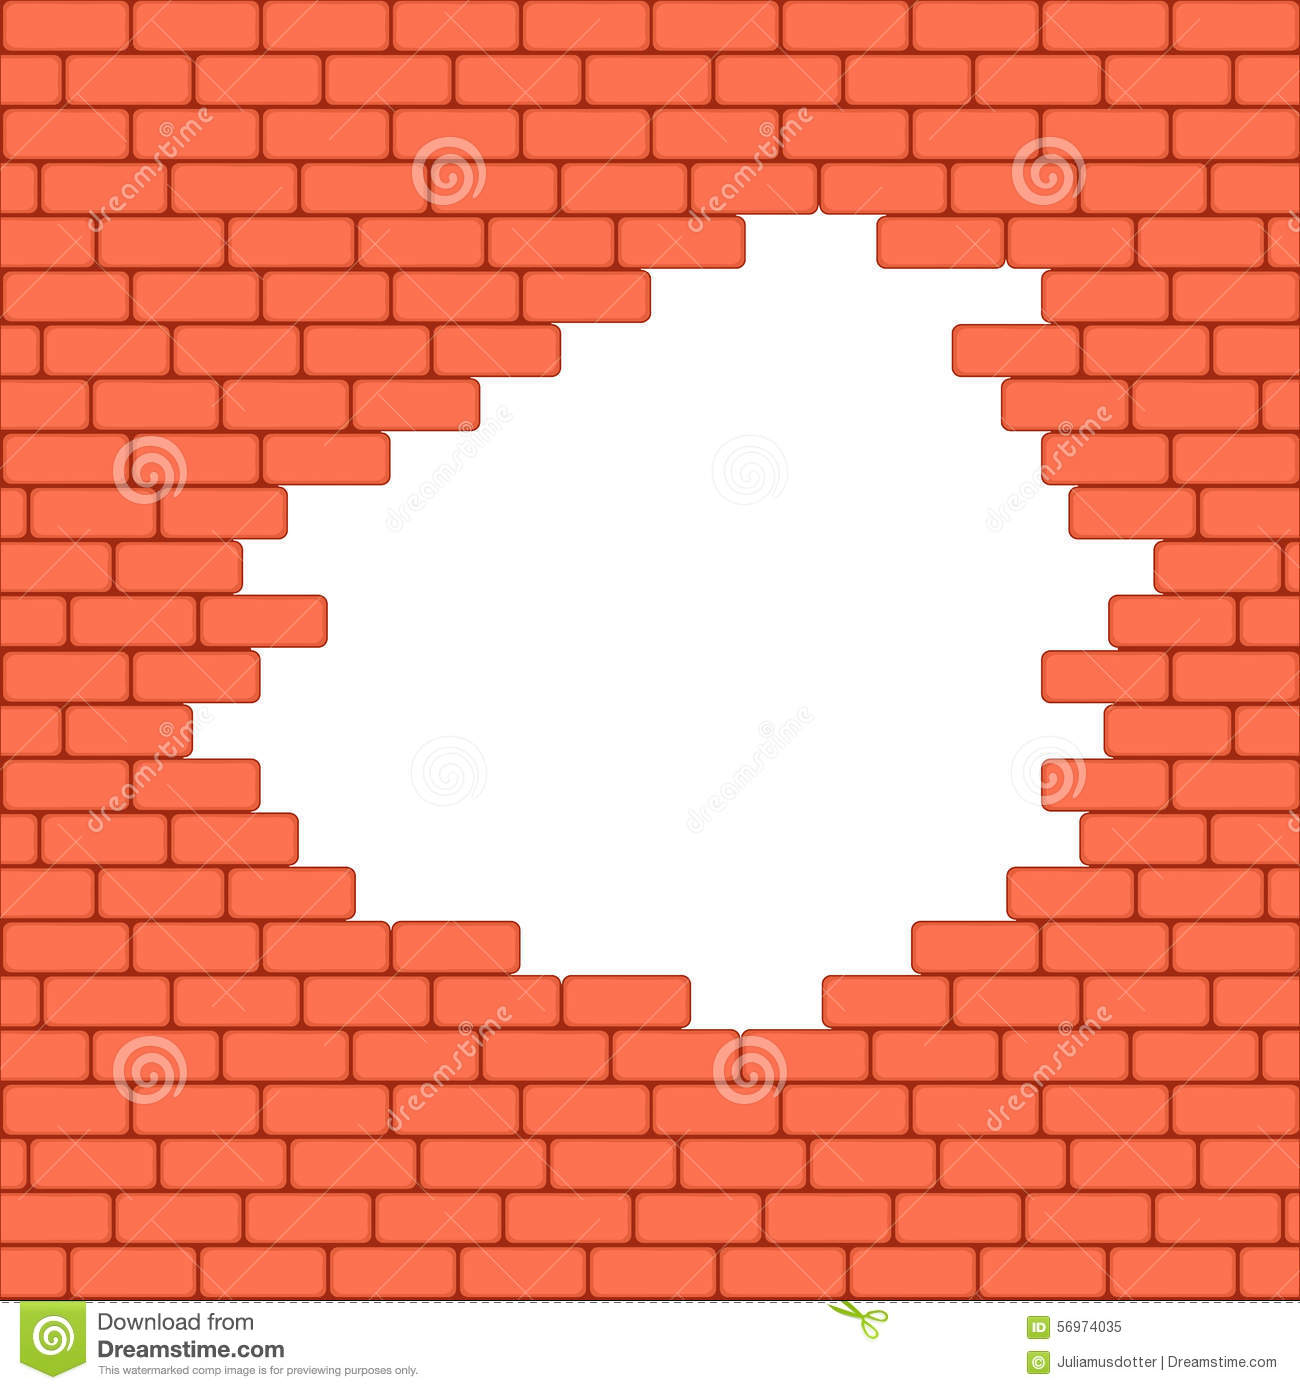 Red Brick Wall Seamless Illustration Background